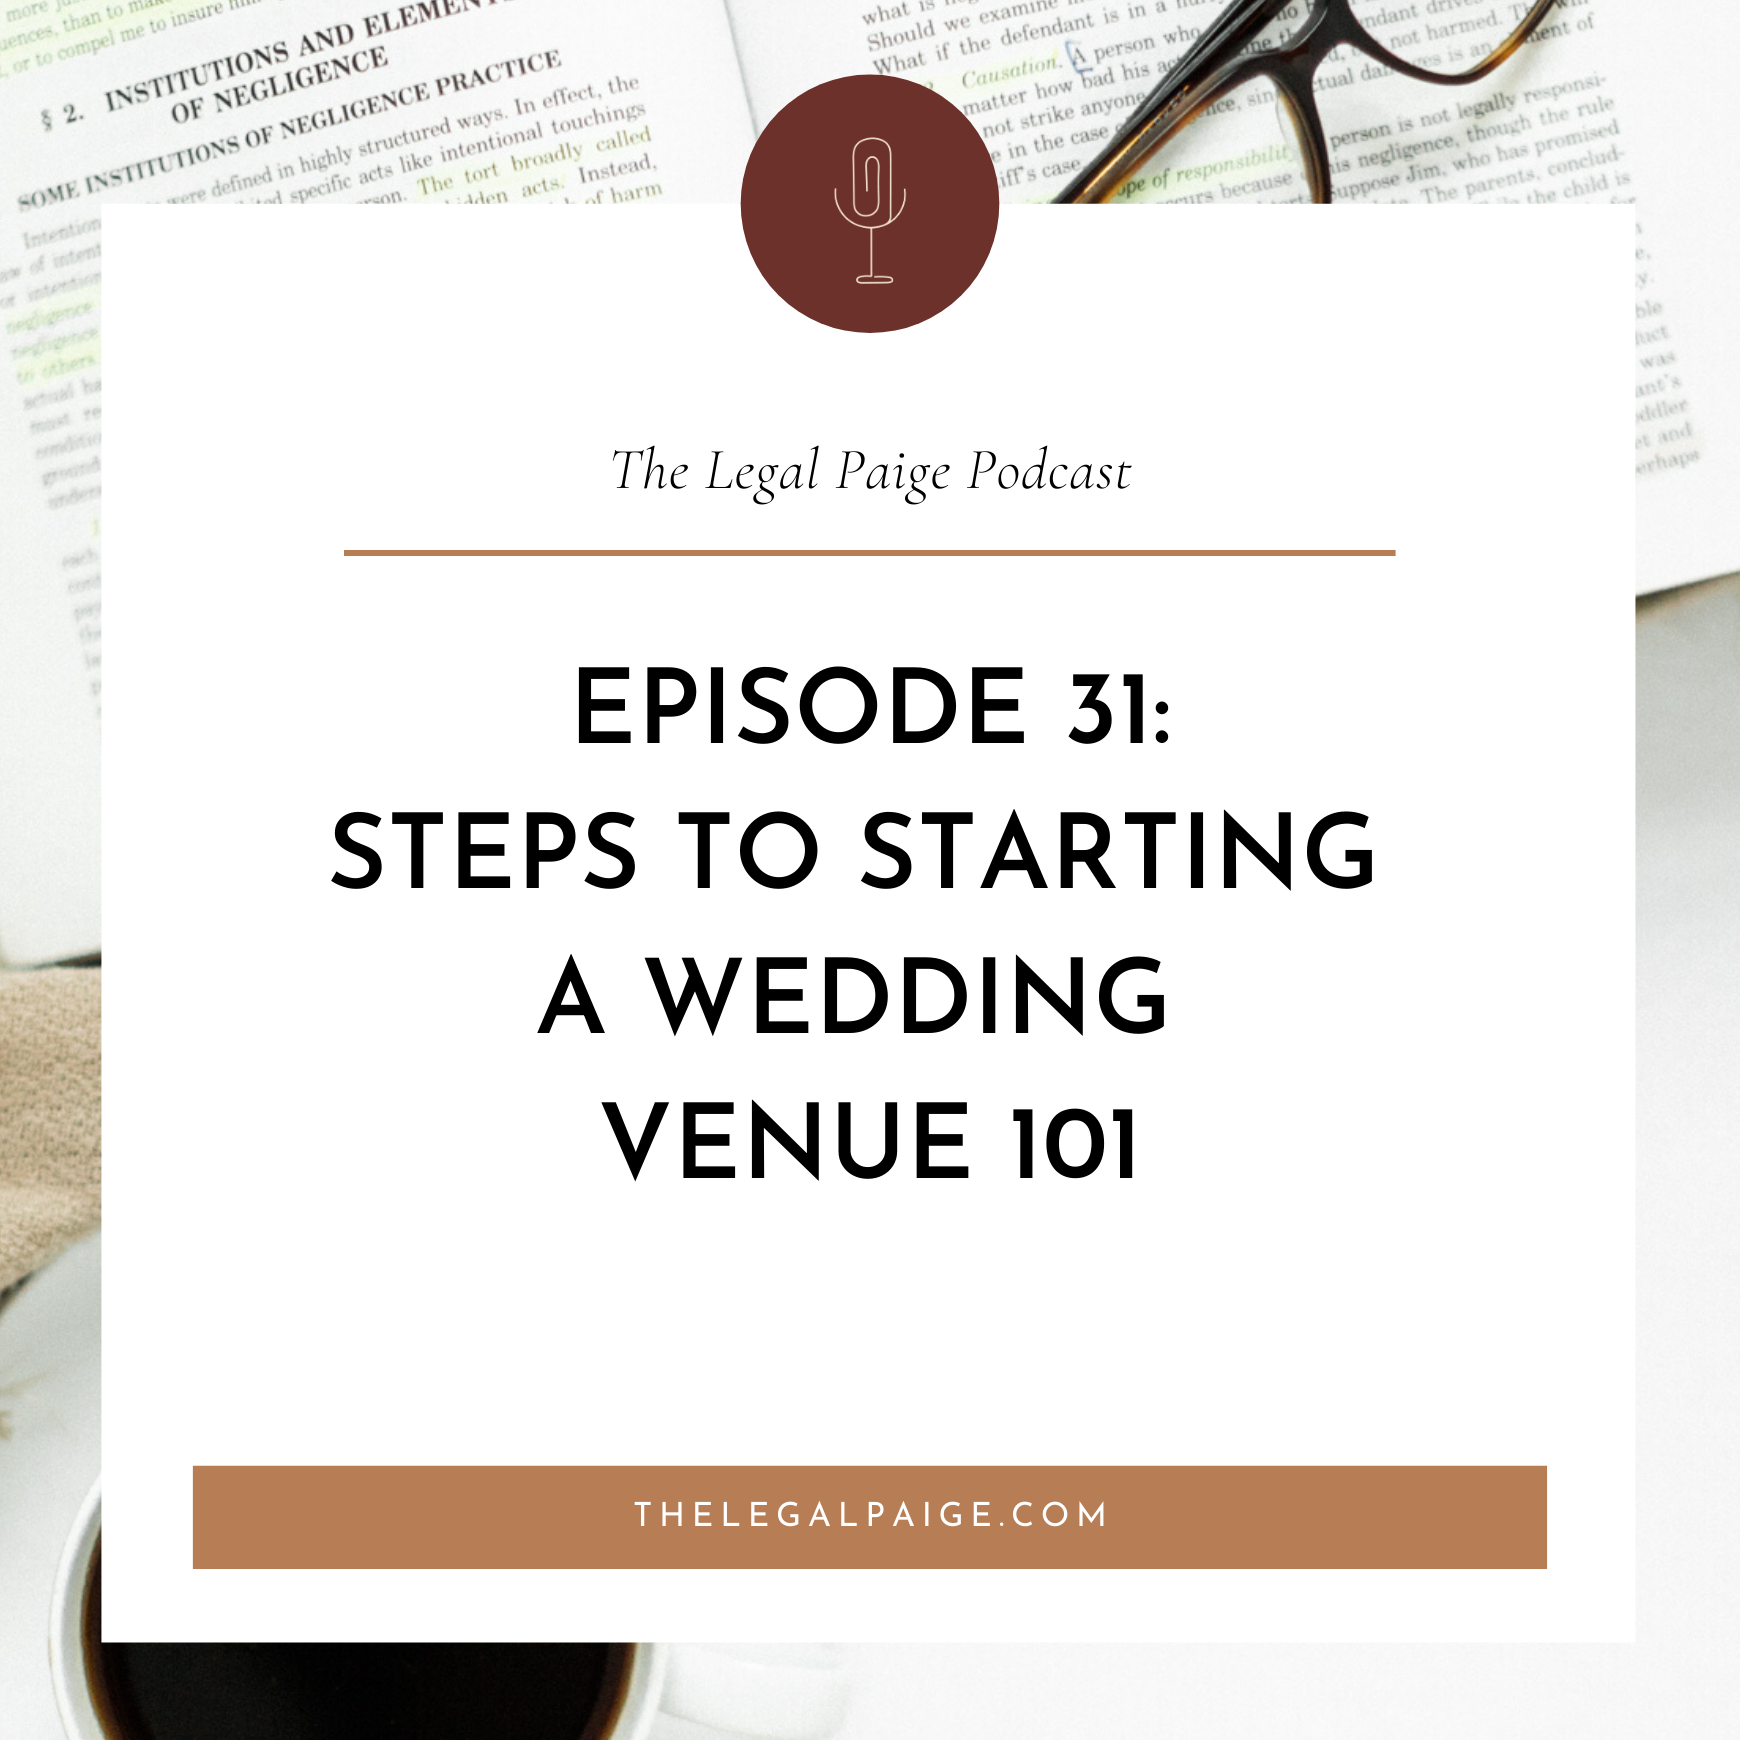 Episode 31: Steps to Starting a Wedding Venue 101